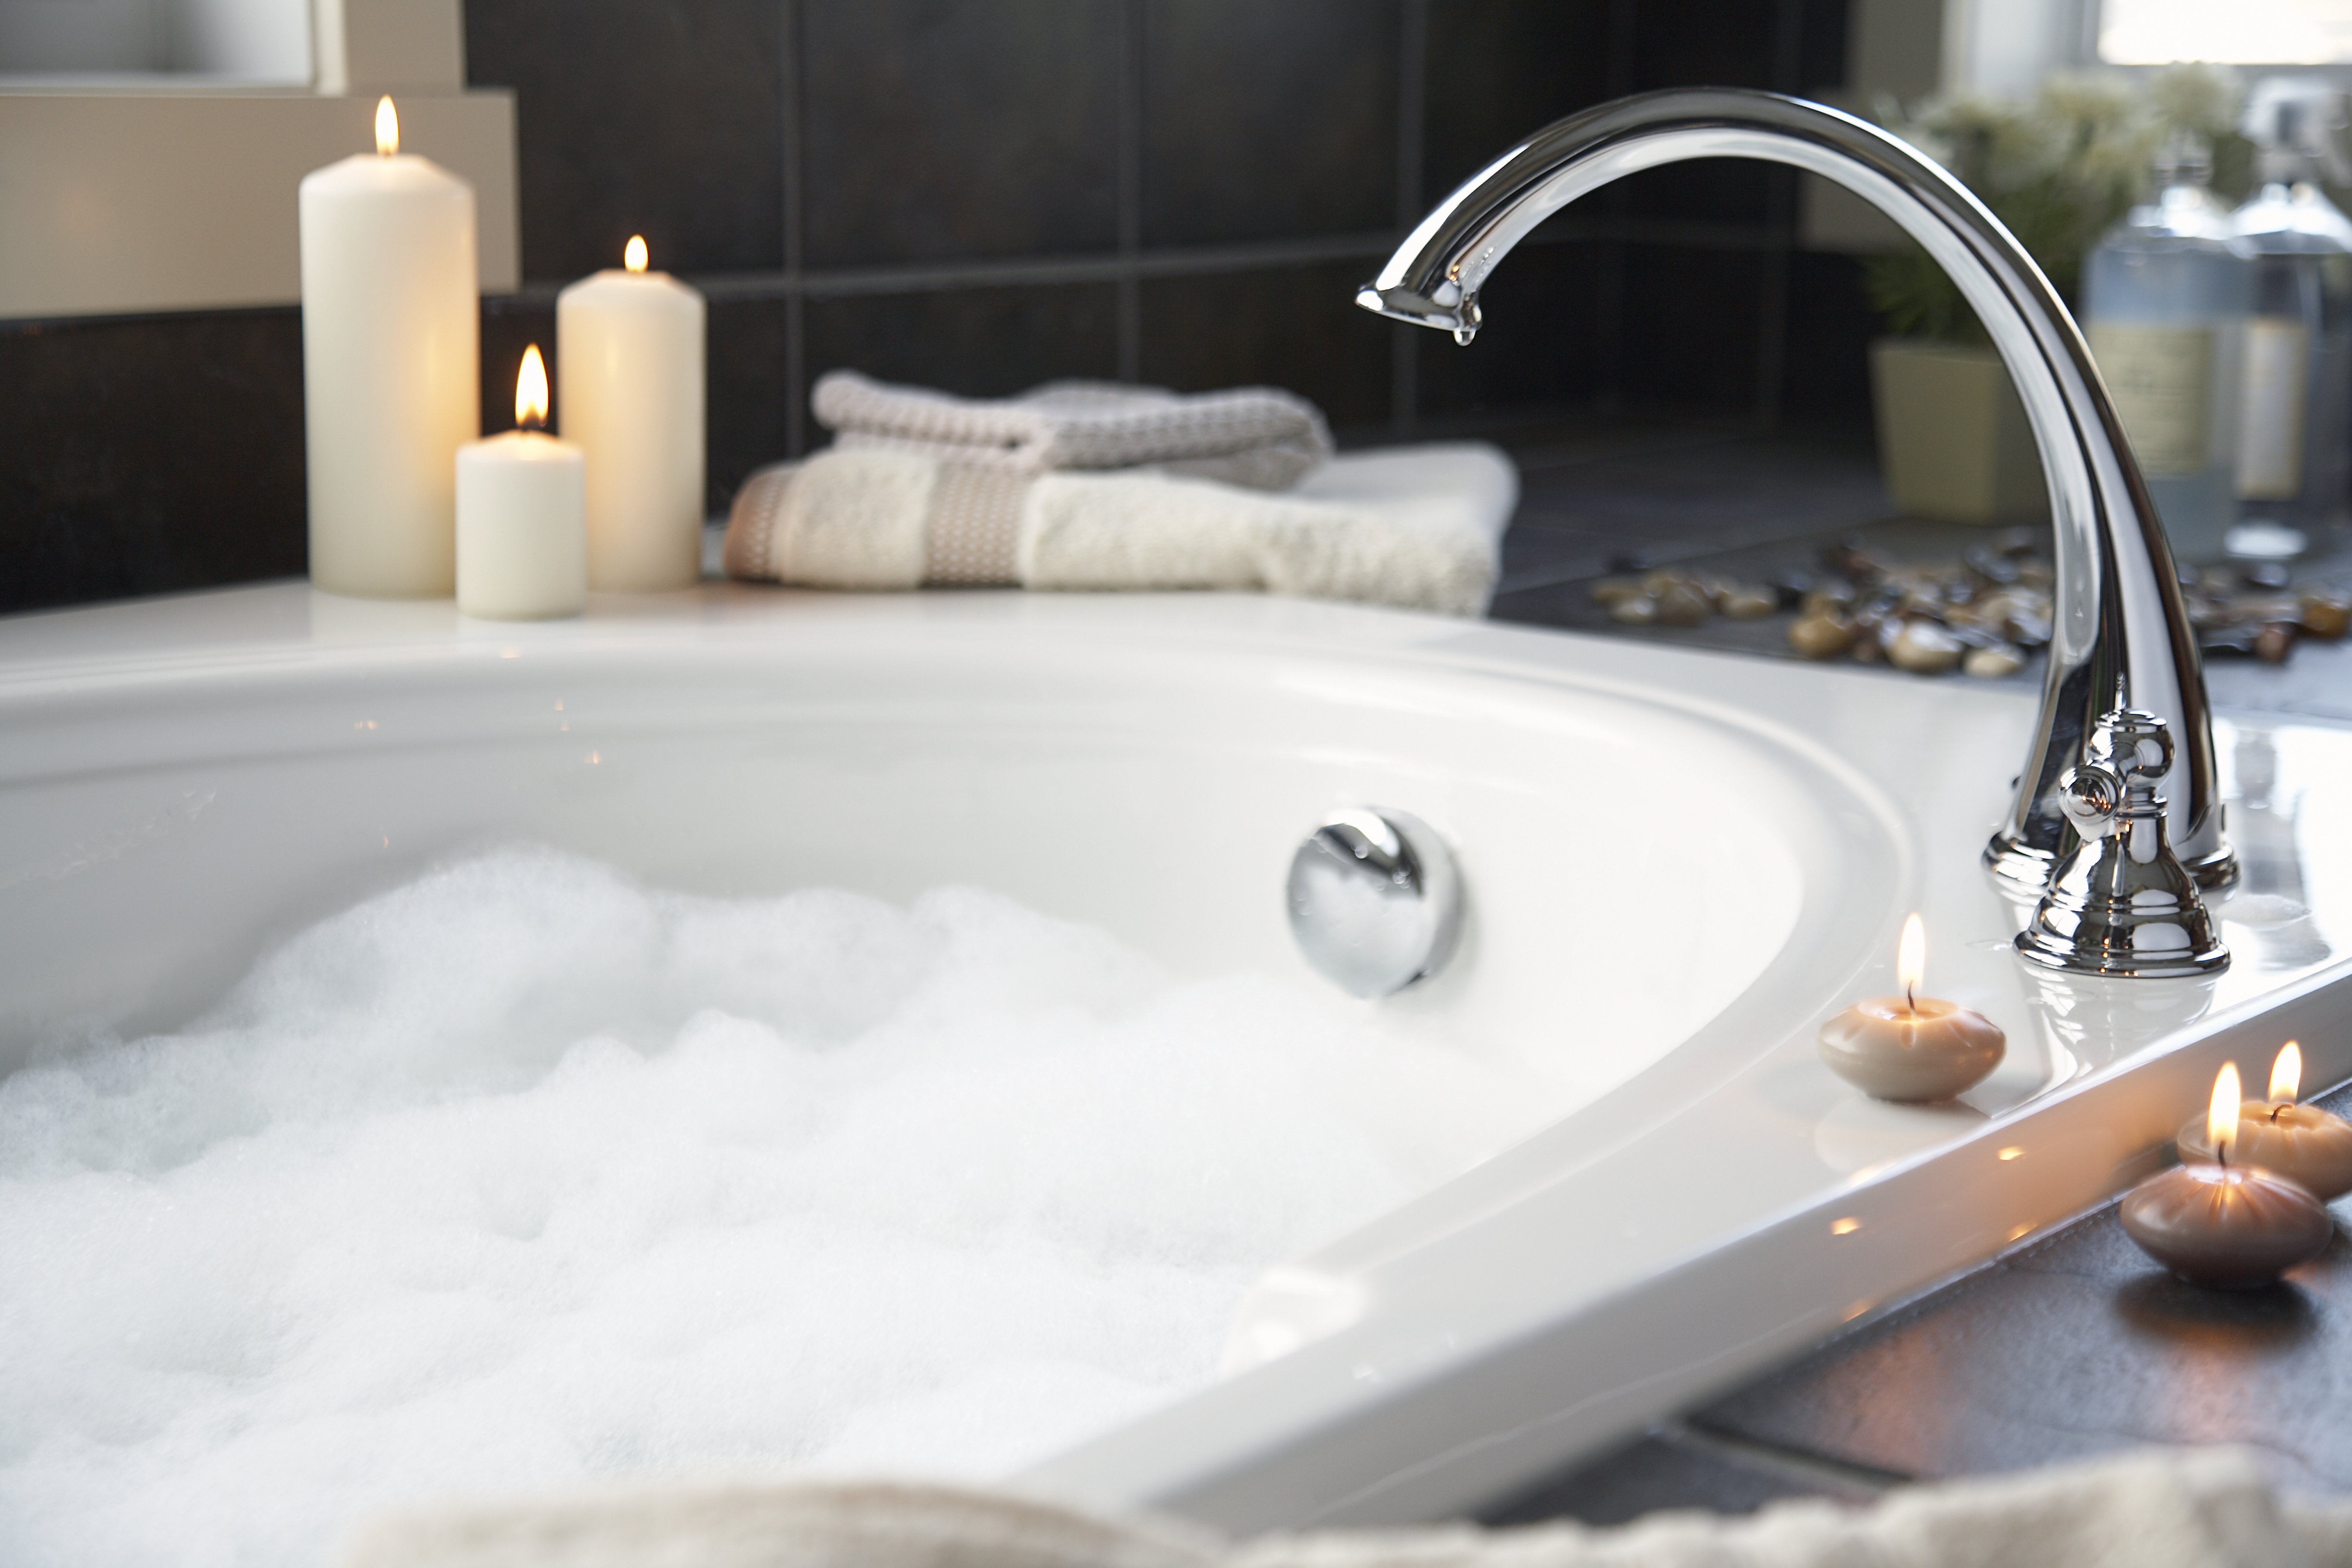 Bath Products for a Whirlpool Tub